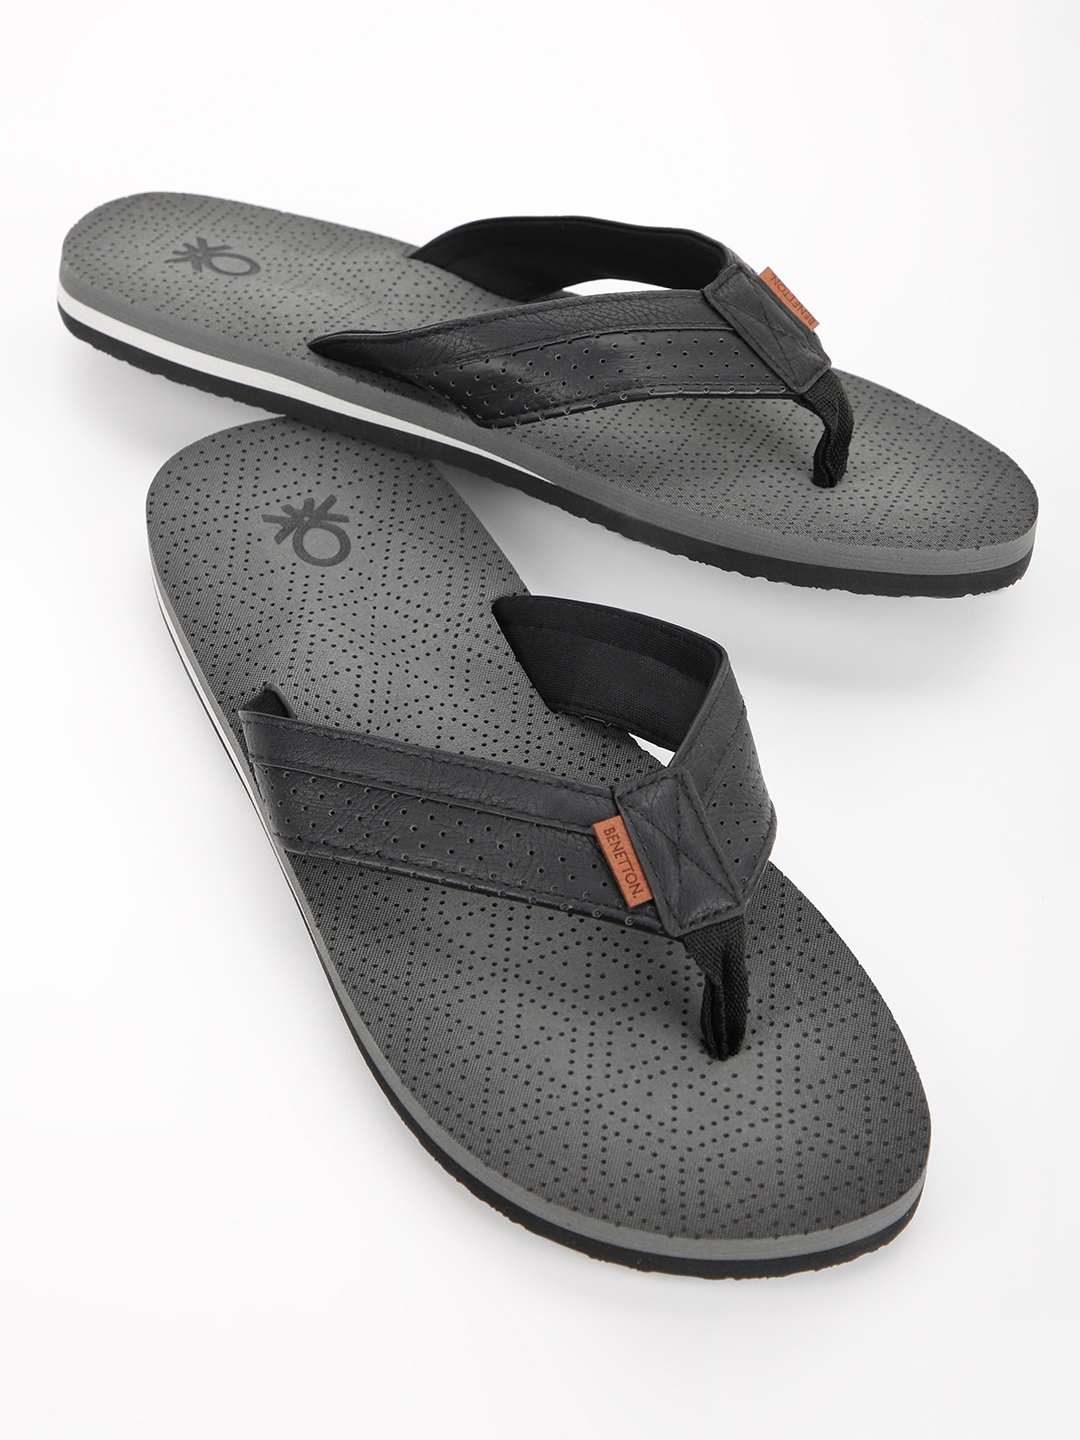 United Colors of Benetton Grey Perforated Logo Flip Flops 1